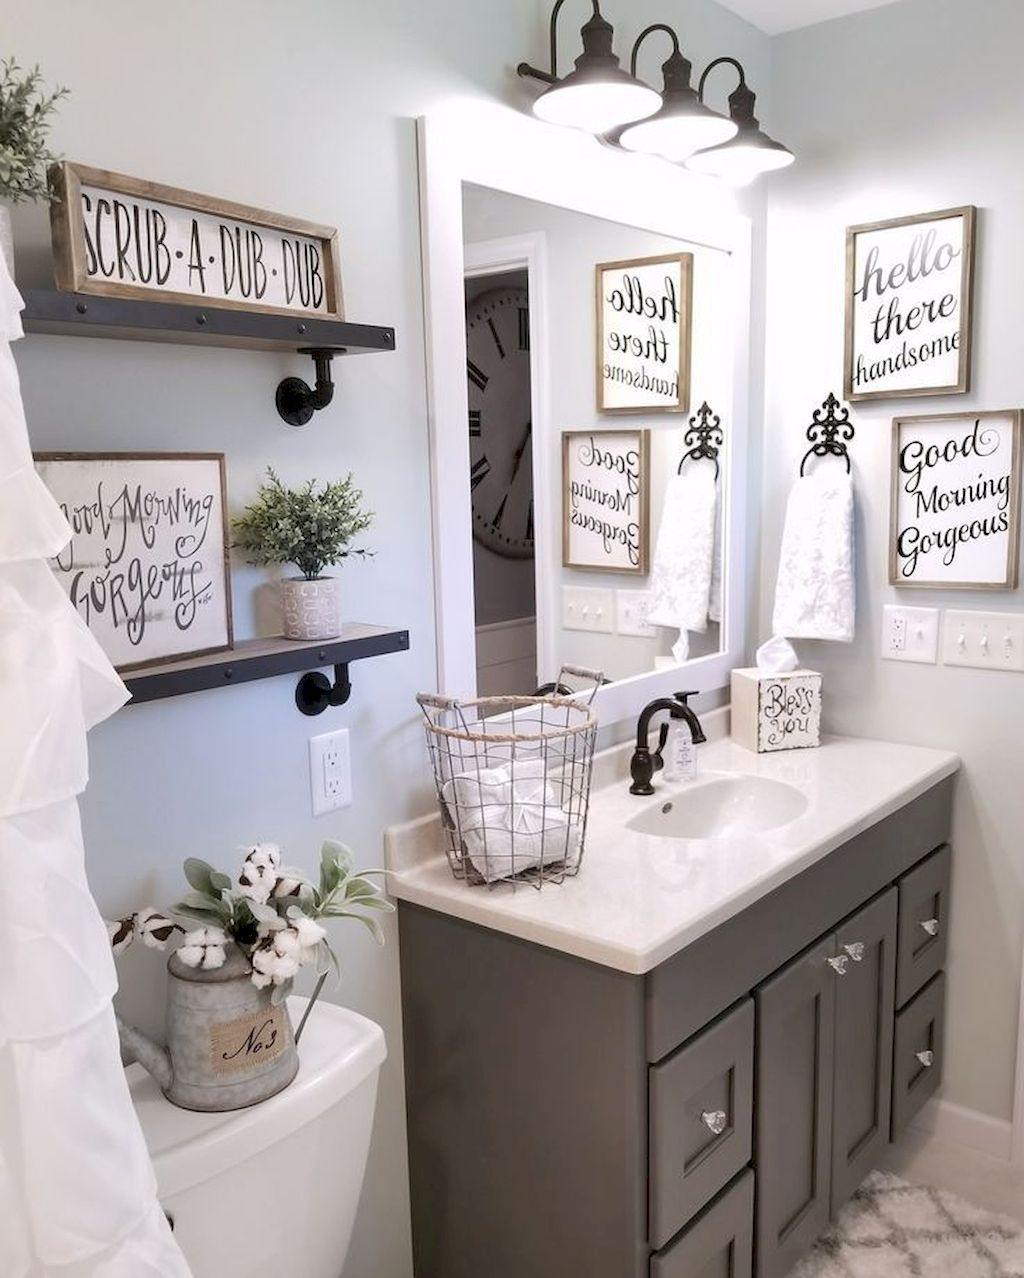 Ideas For Bathroom Decor. Gorgeous 110 Spectacular Farmhouse Bathroom Decor Ideas Httpsroomadness Com20171215110 Spectacular Farmhouse Bathroom Decor Ideas